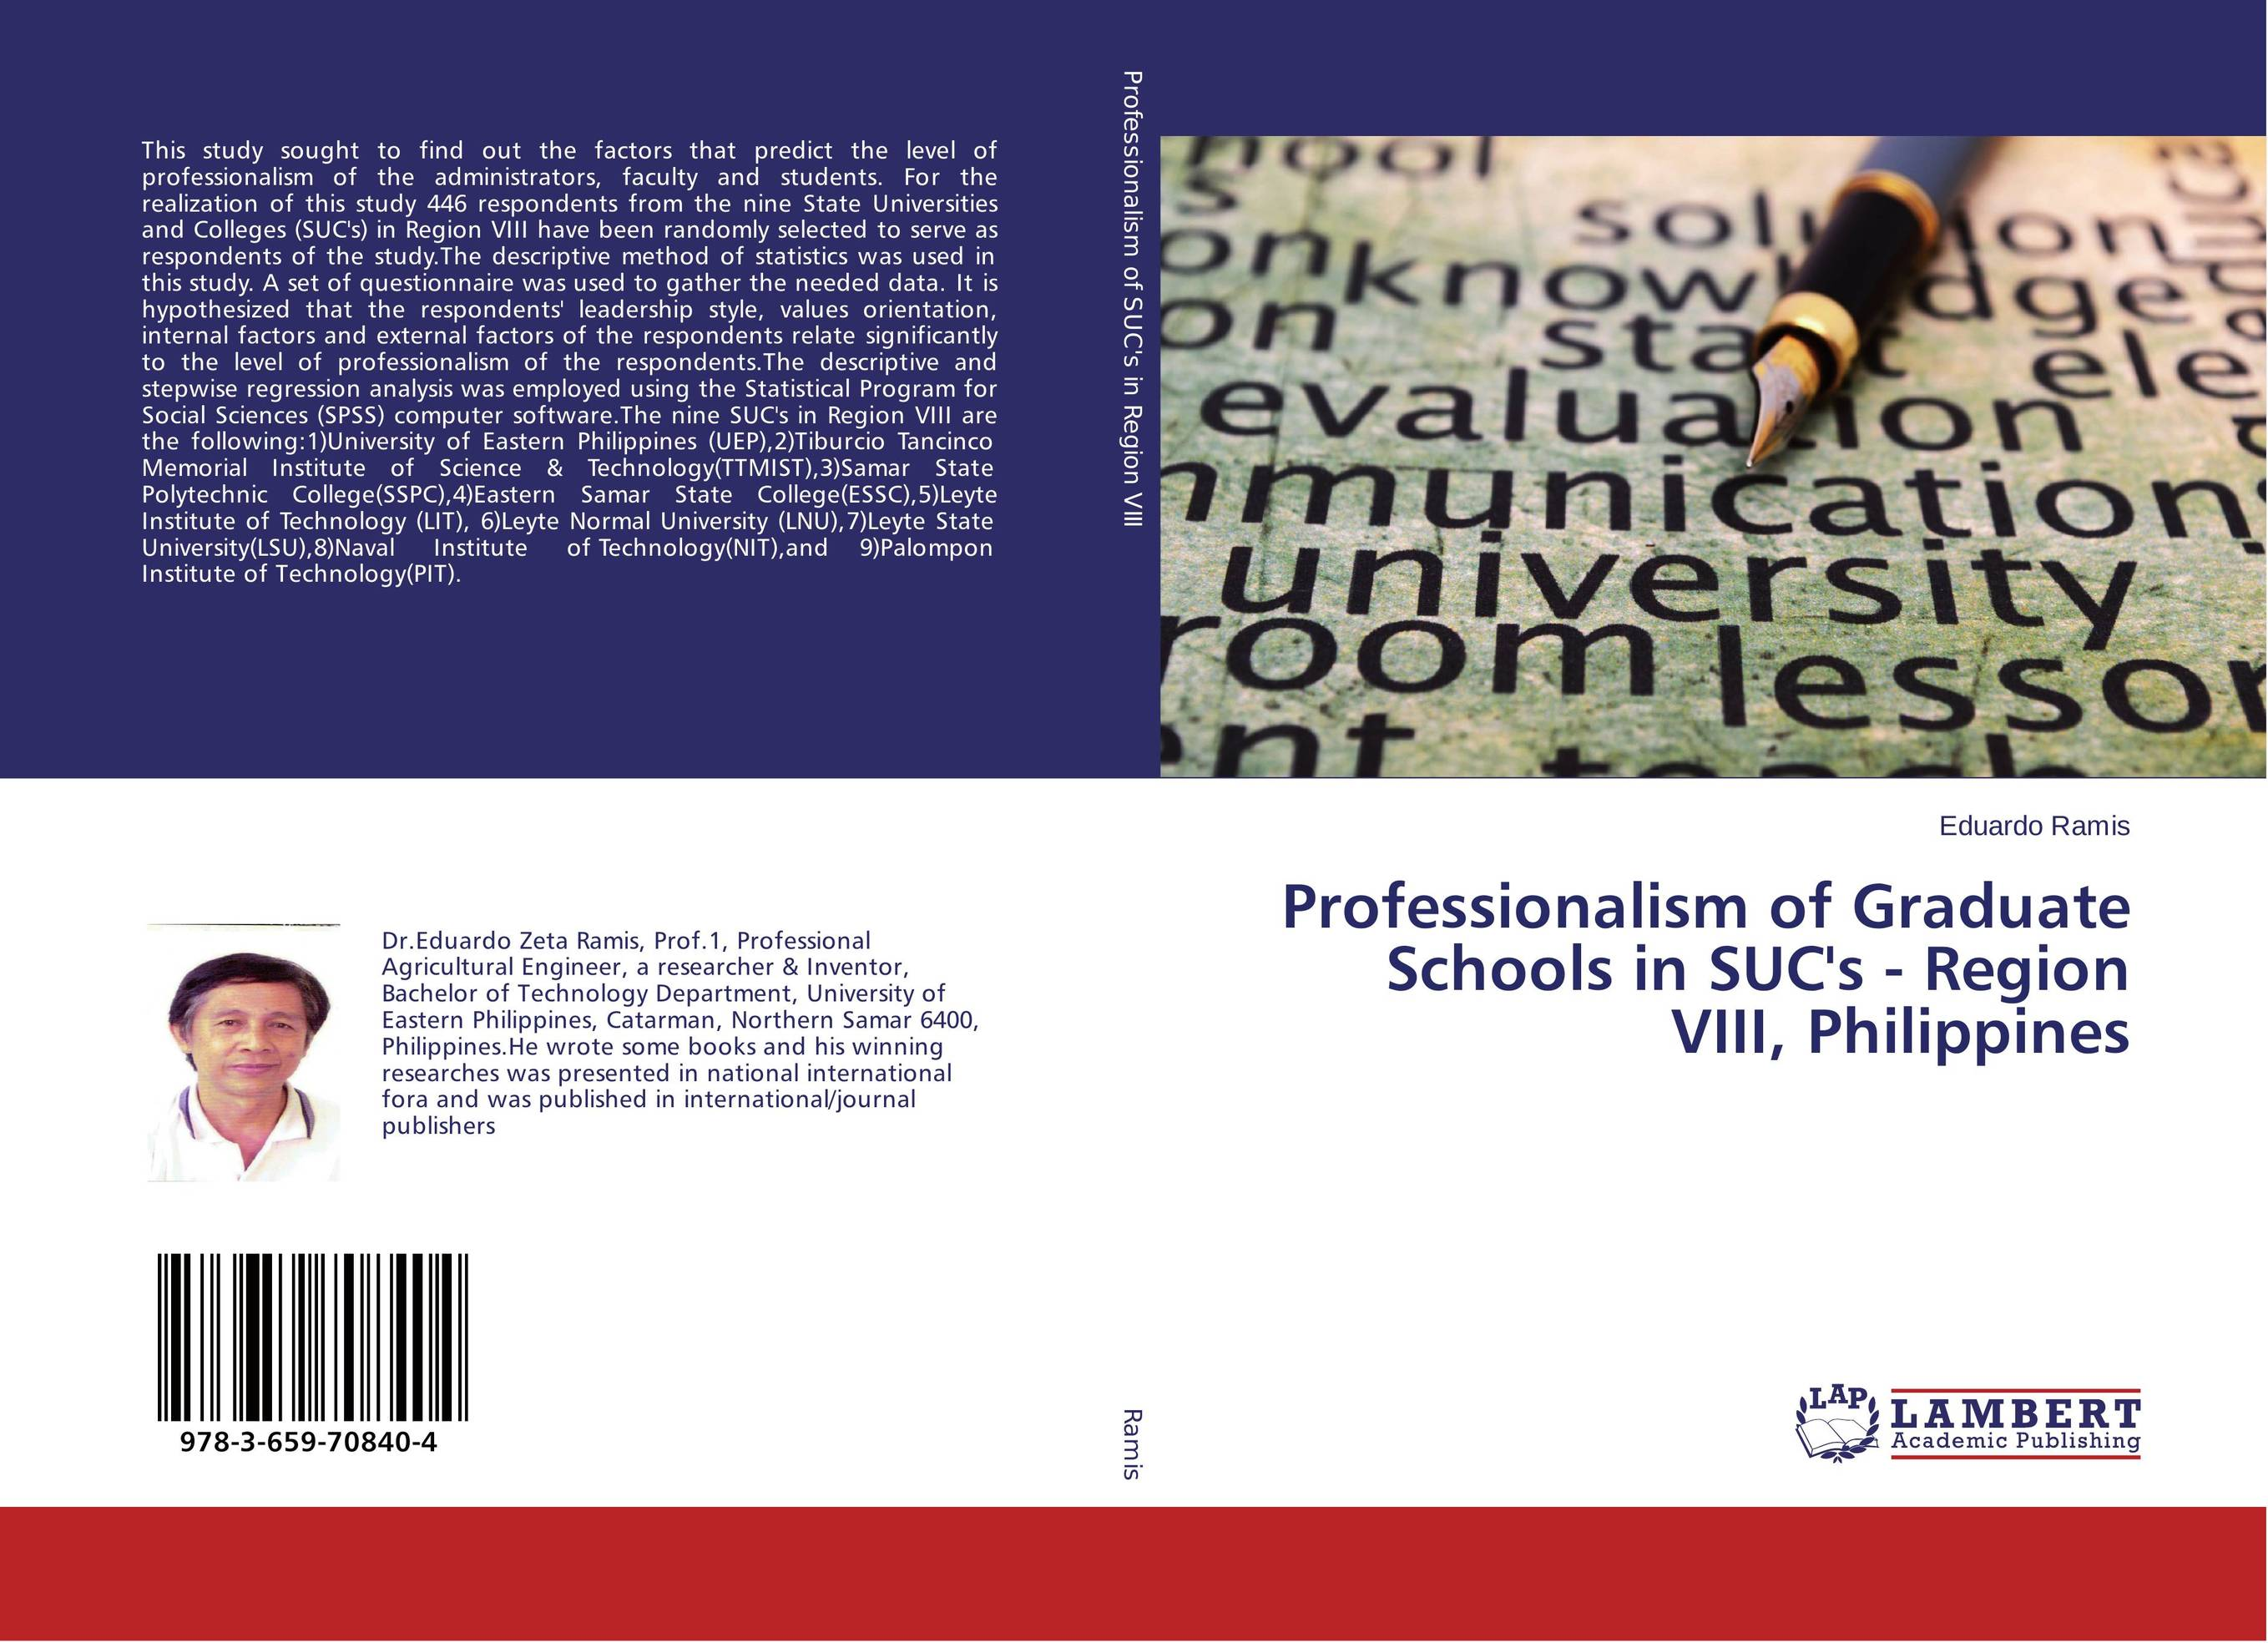 Professionalism of Graduate Schools in SUC's - Region VIII, Philippines модель дома if the state of science and technology 3d